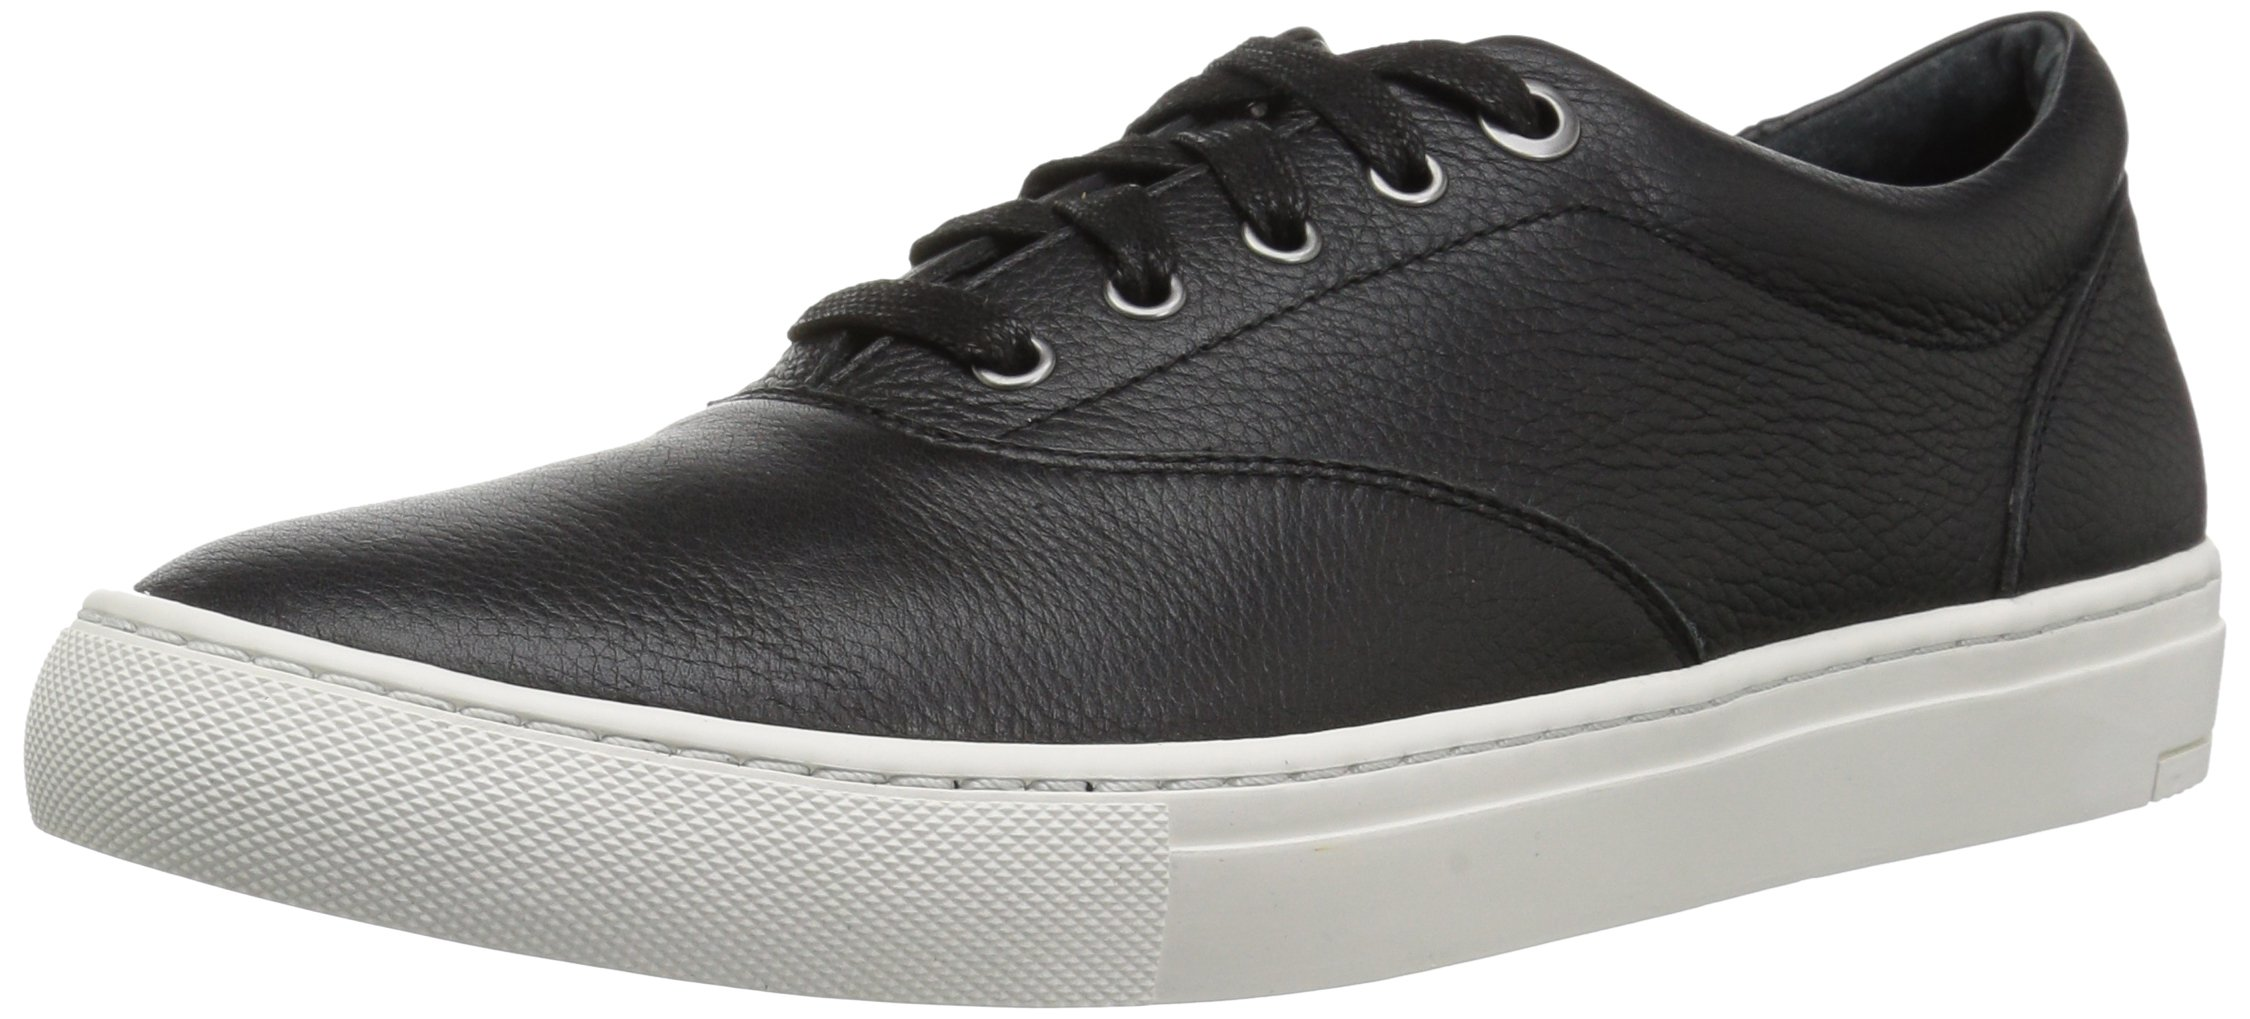 206 Collective Men's Olympic Casual Lace-up Sneaker, Black Leather, 11.5 D US